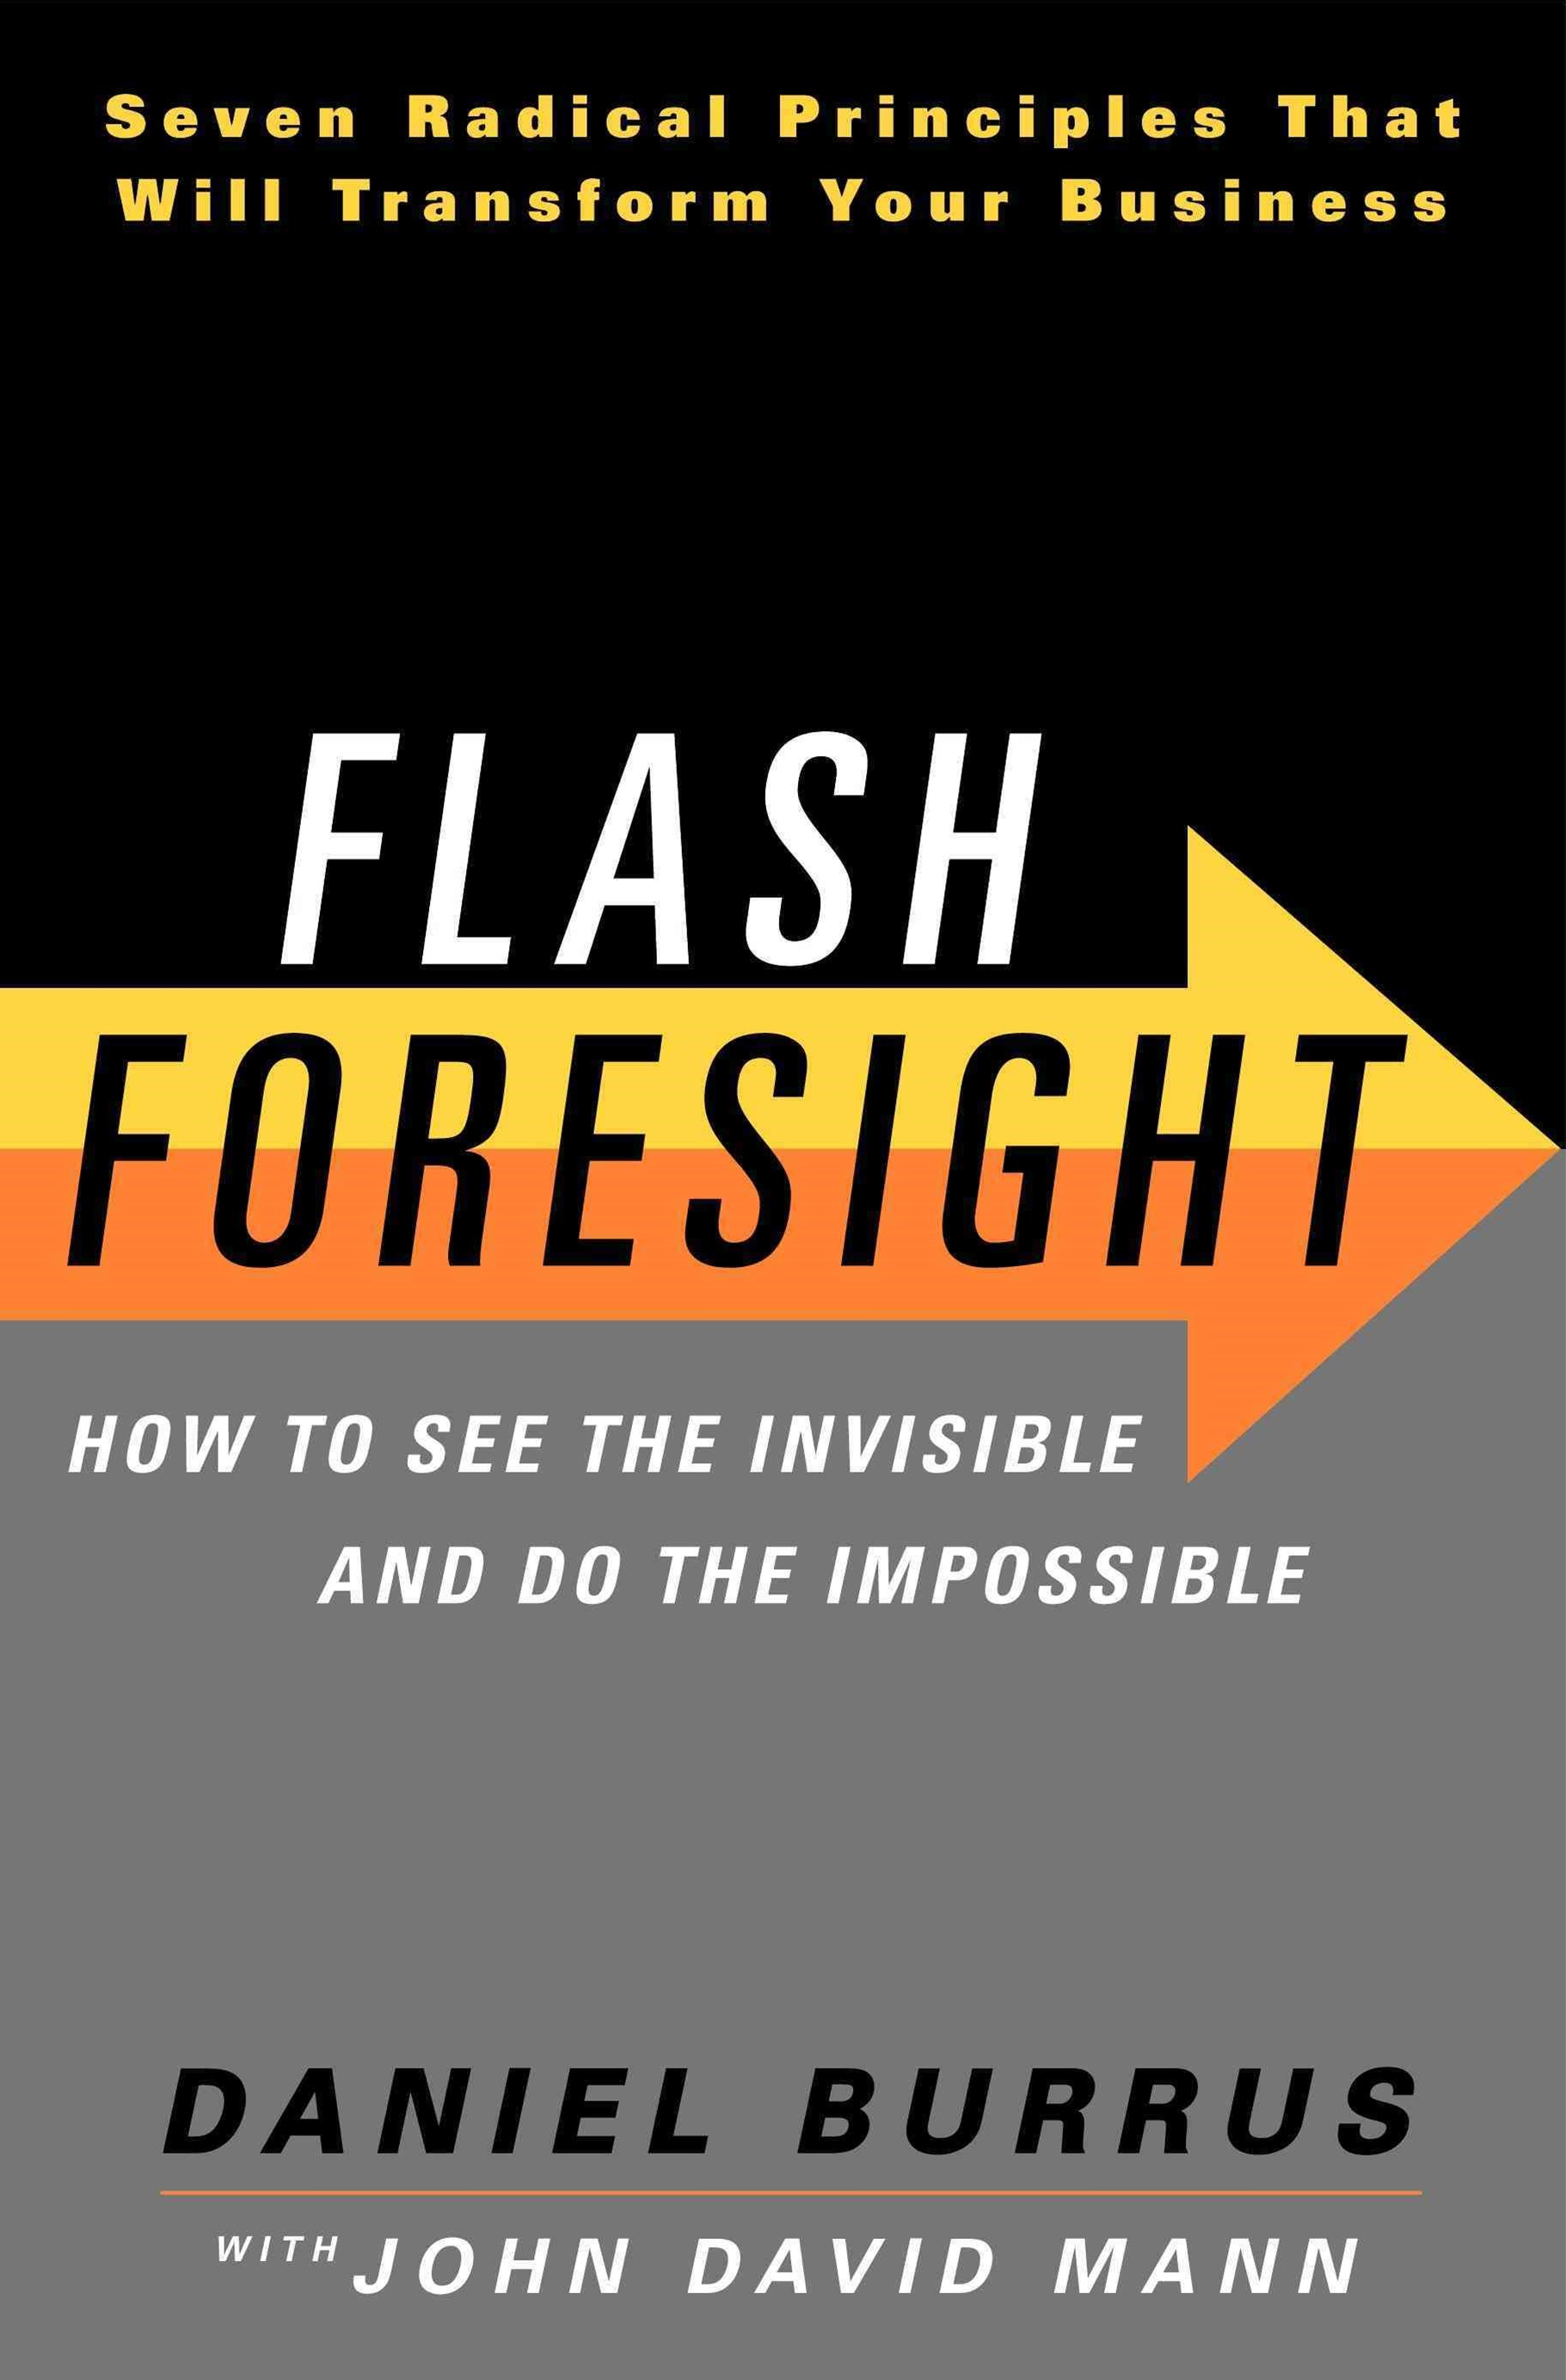 Flash Foresight: How to See the Invisible and Do the Impossible